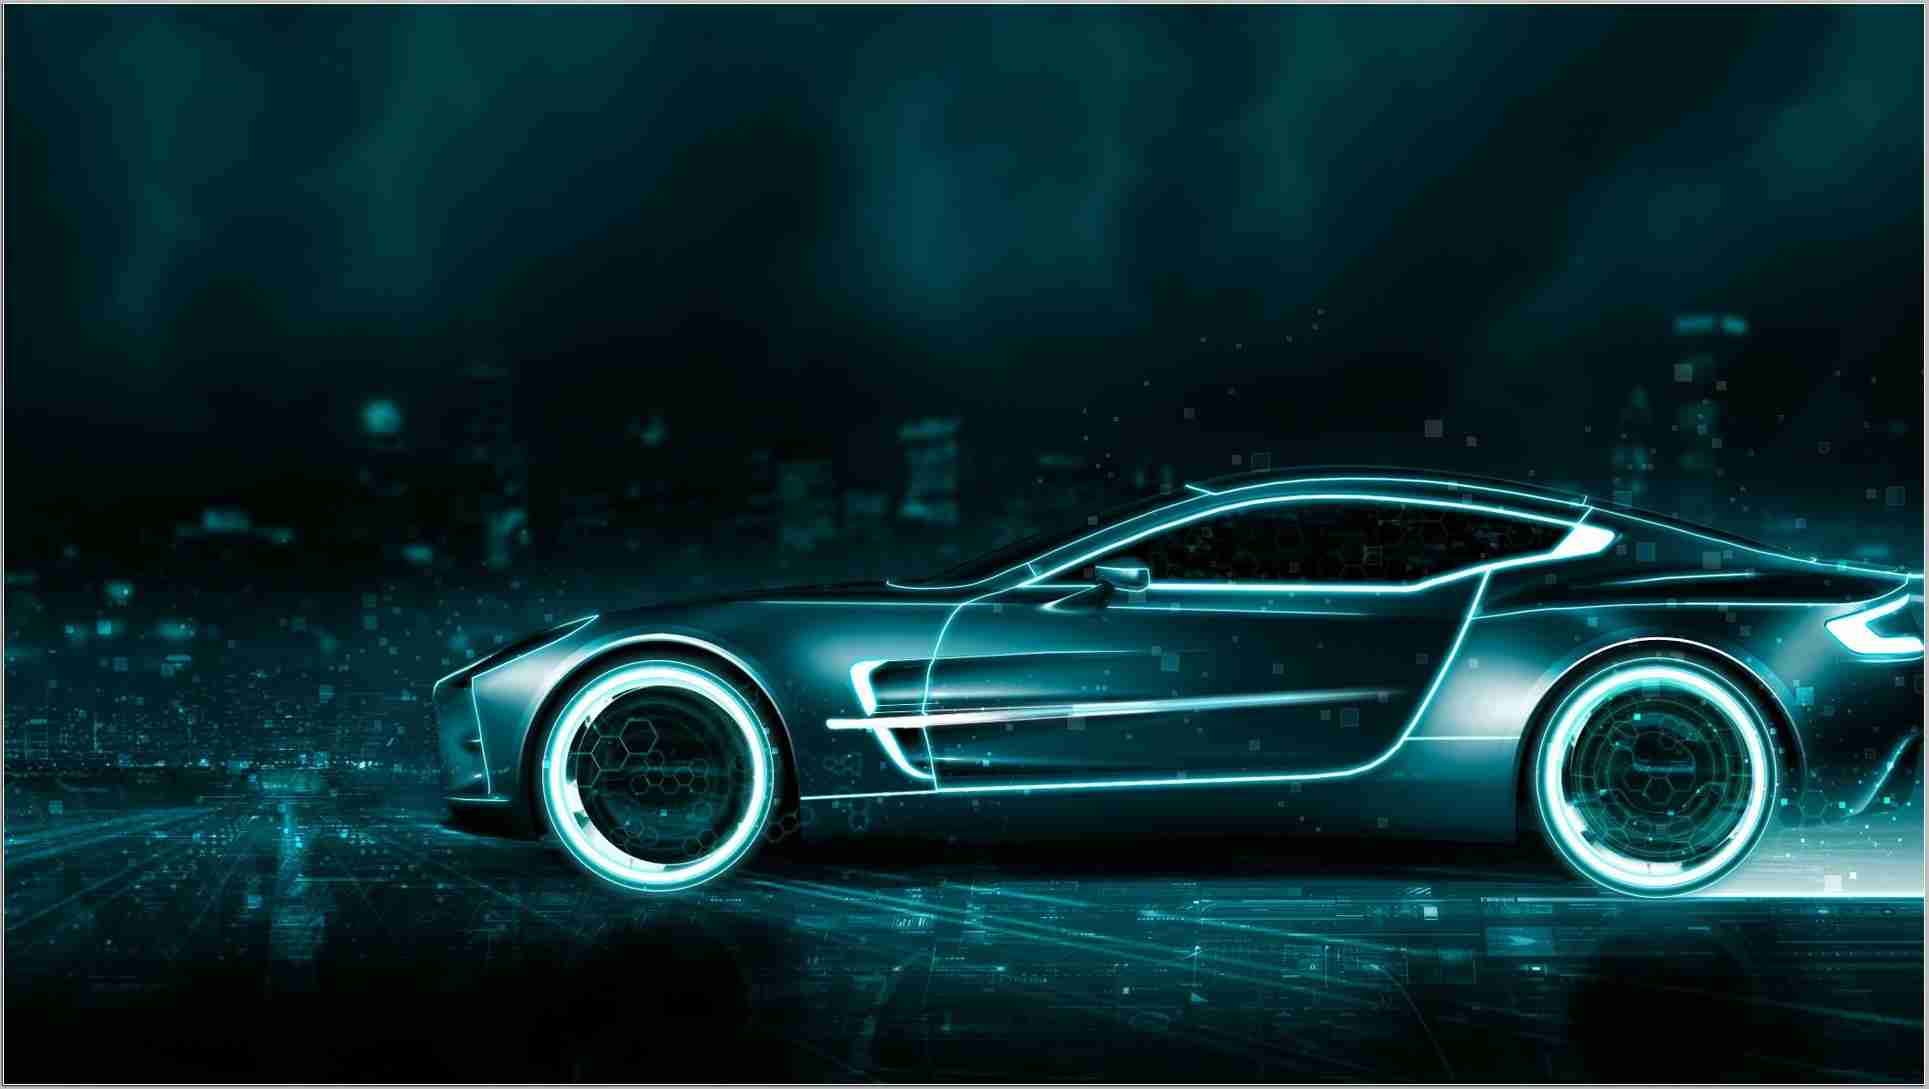 Tron Legacy HD Wallpapers Download   PicsBrokercom 1929x1089